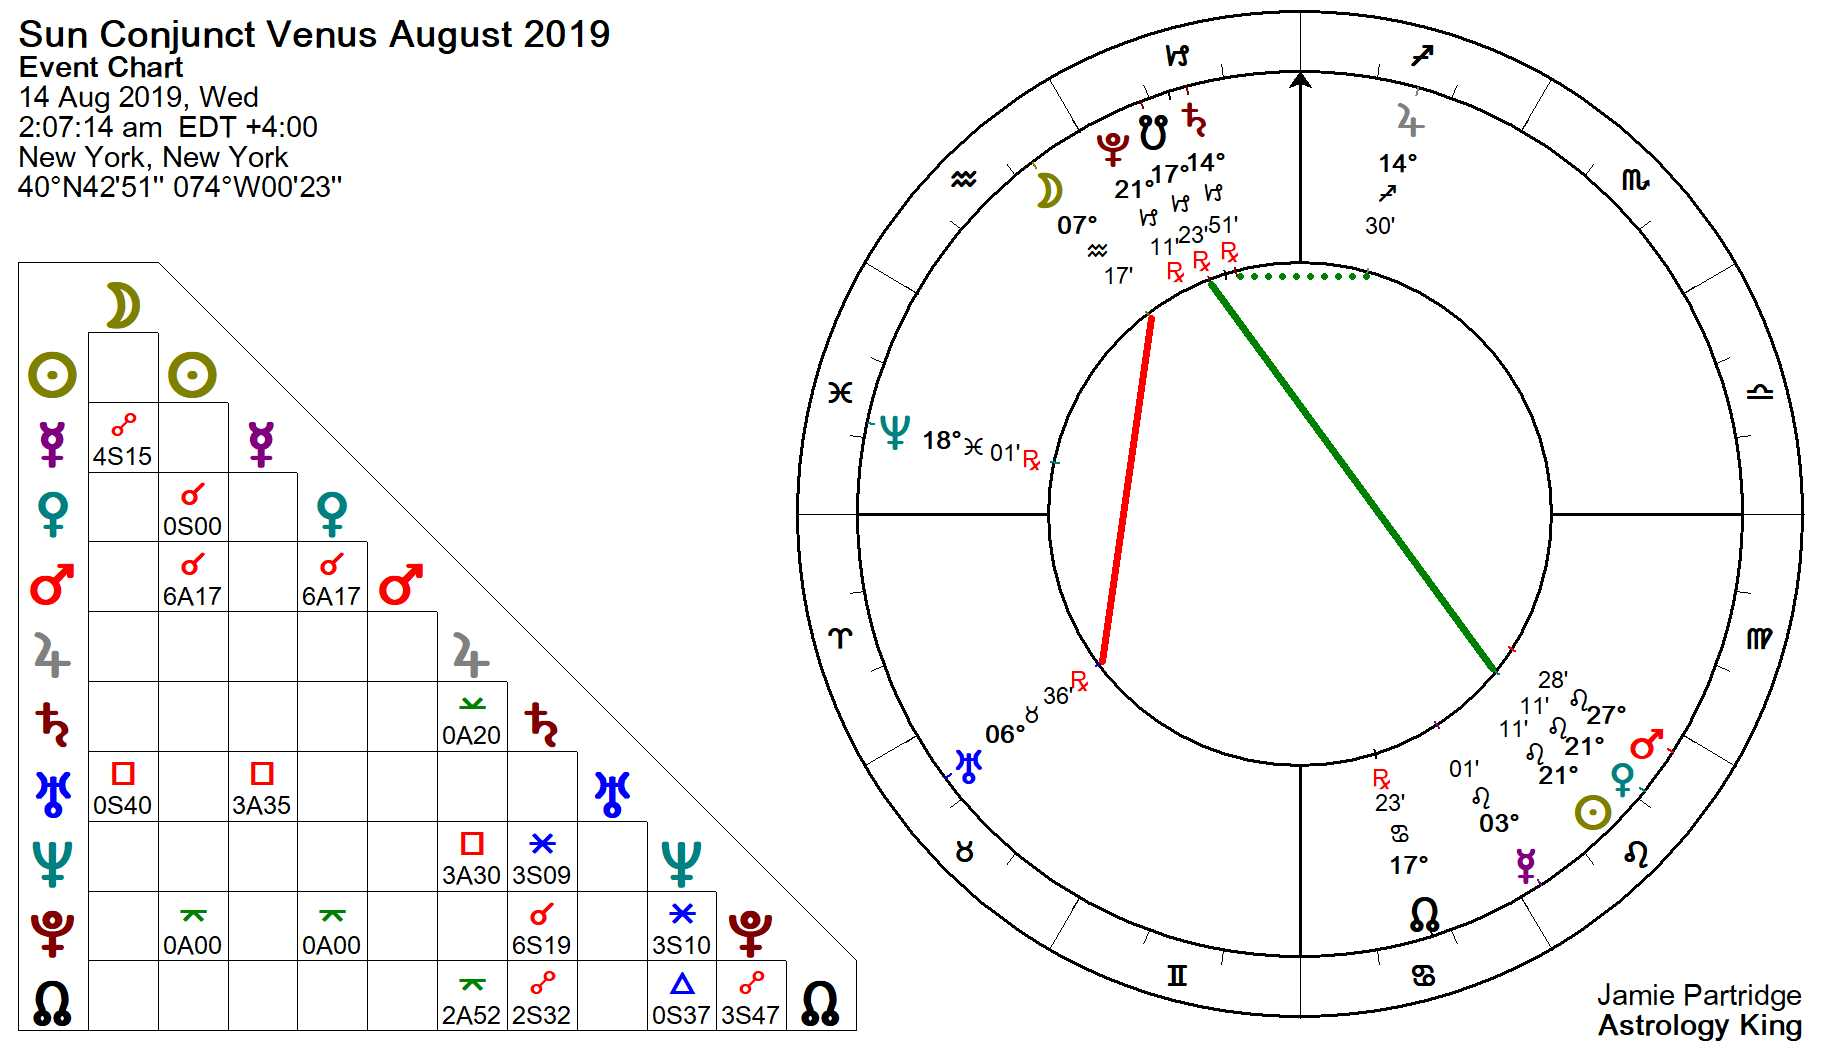 Sun Conjunct Venus August 14, 2019 – Astrology King